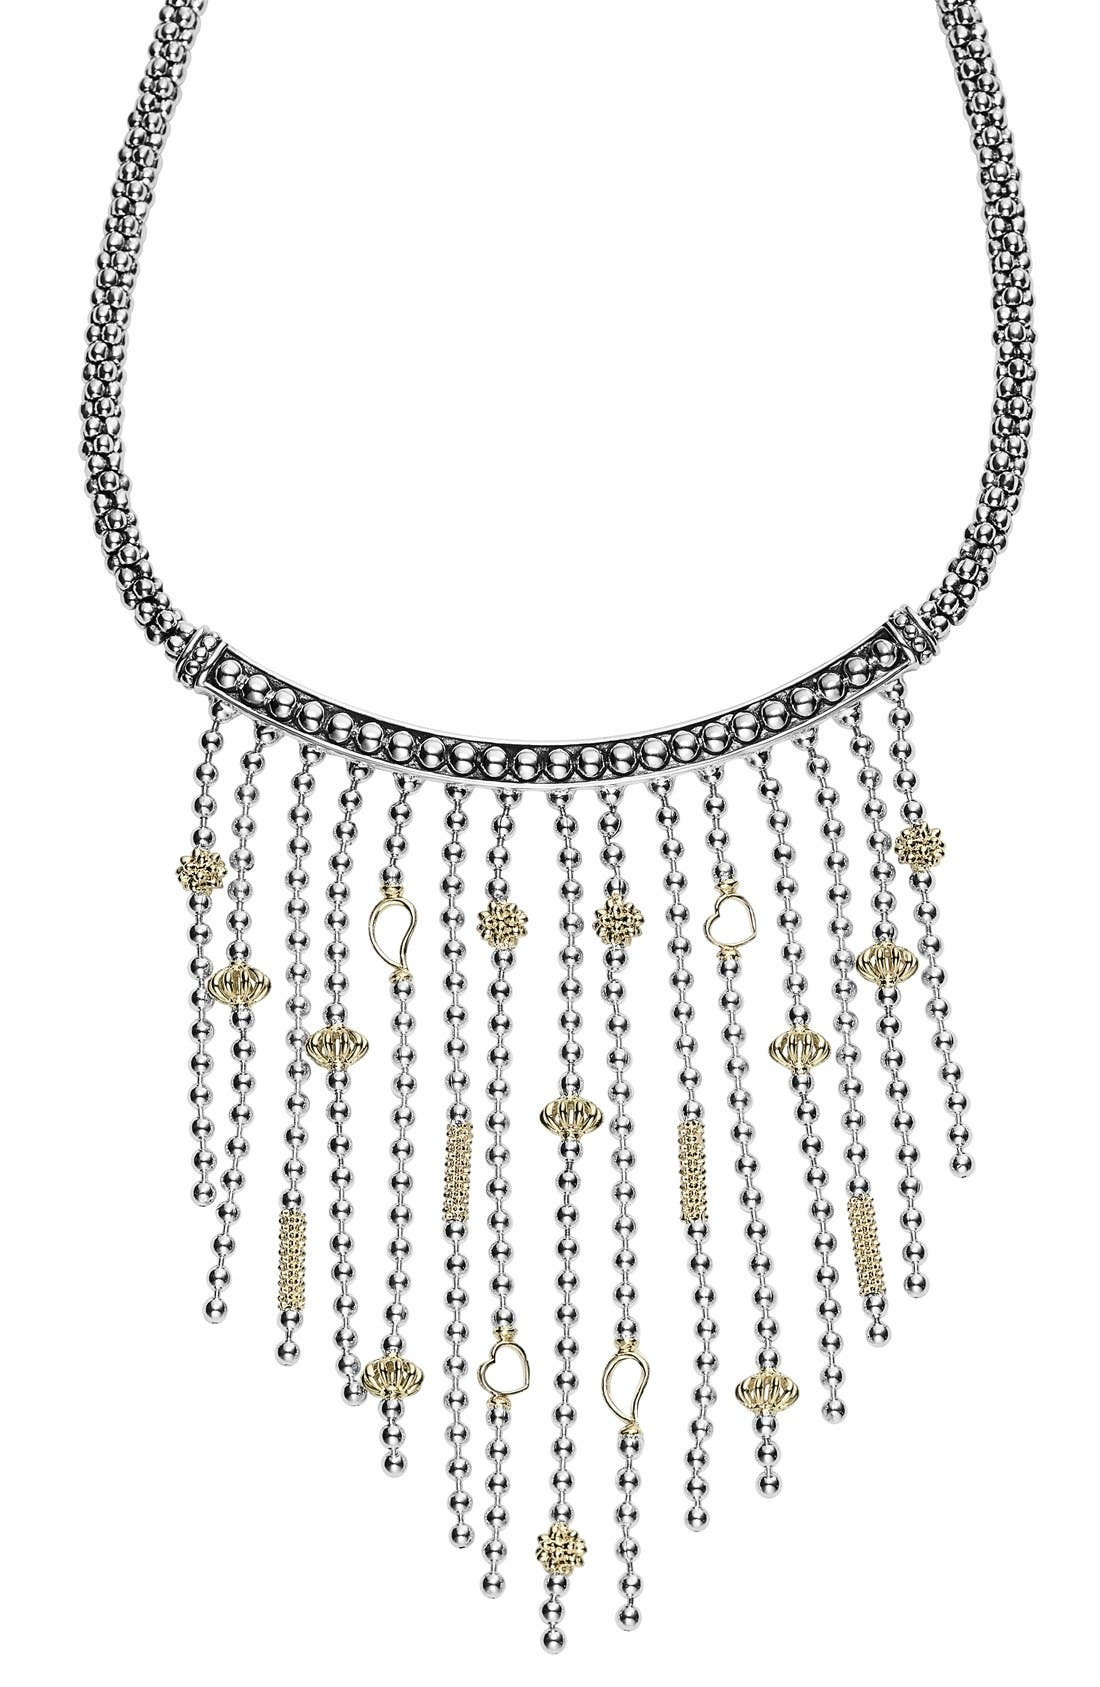 LAGOS 'Caviar Icon' Rope Bib Necklace